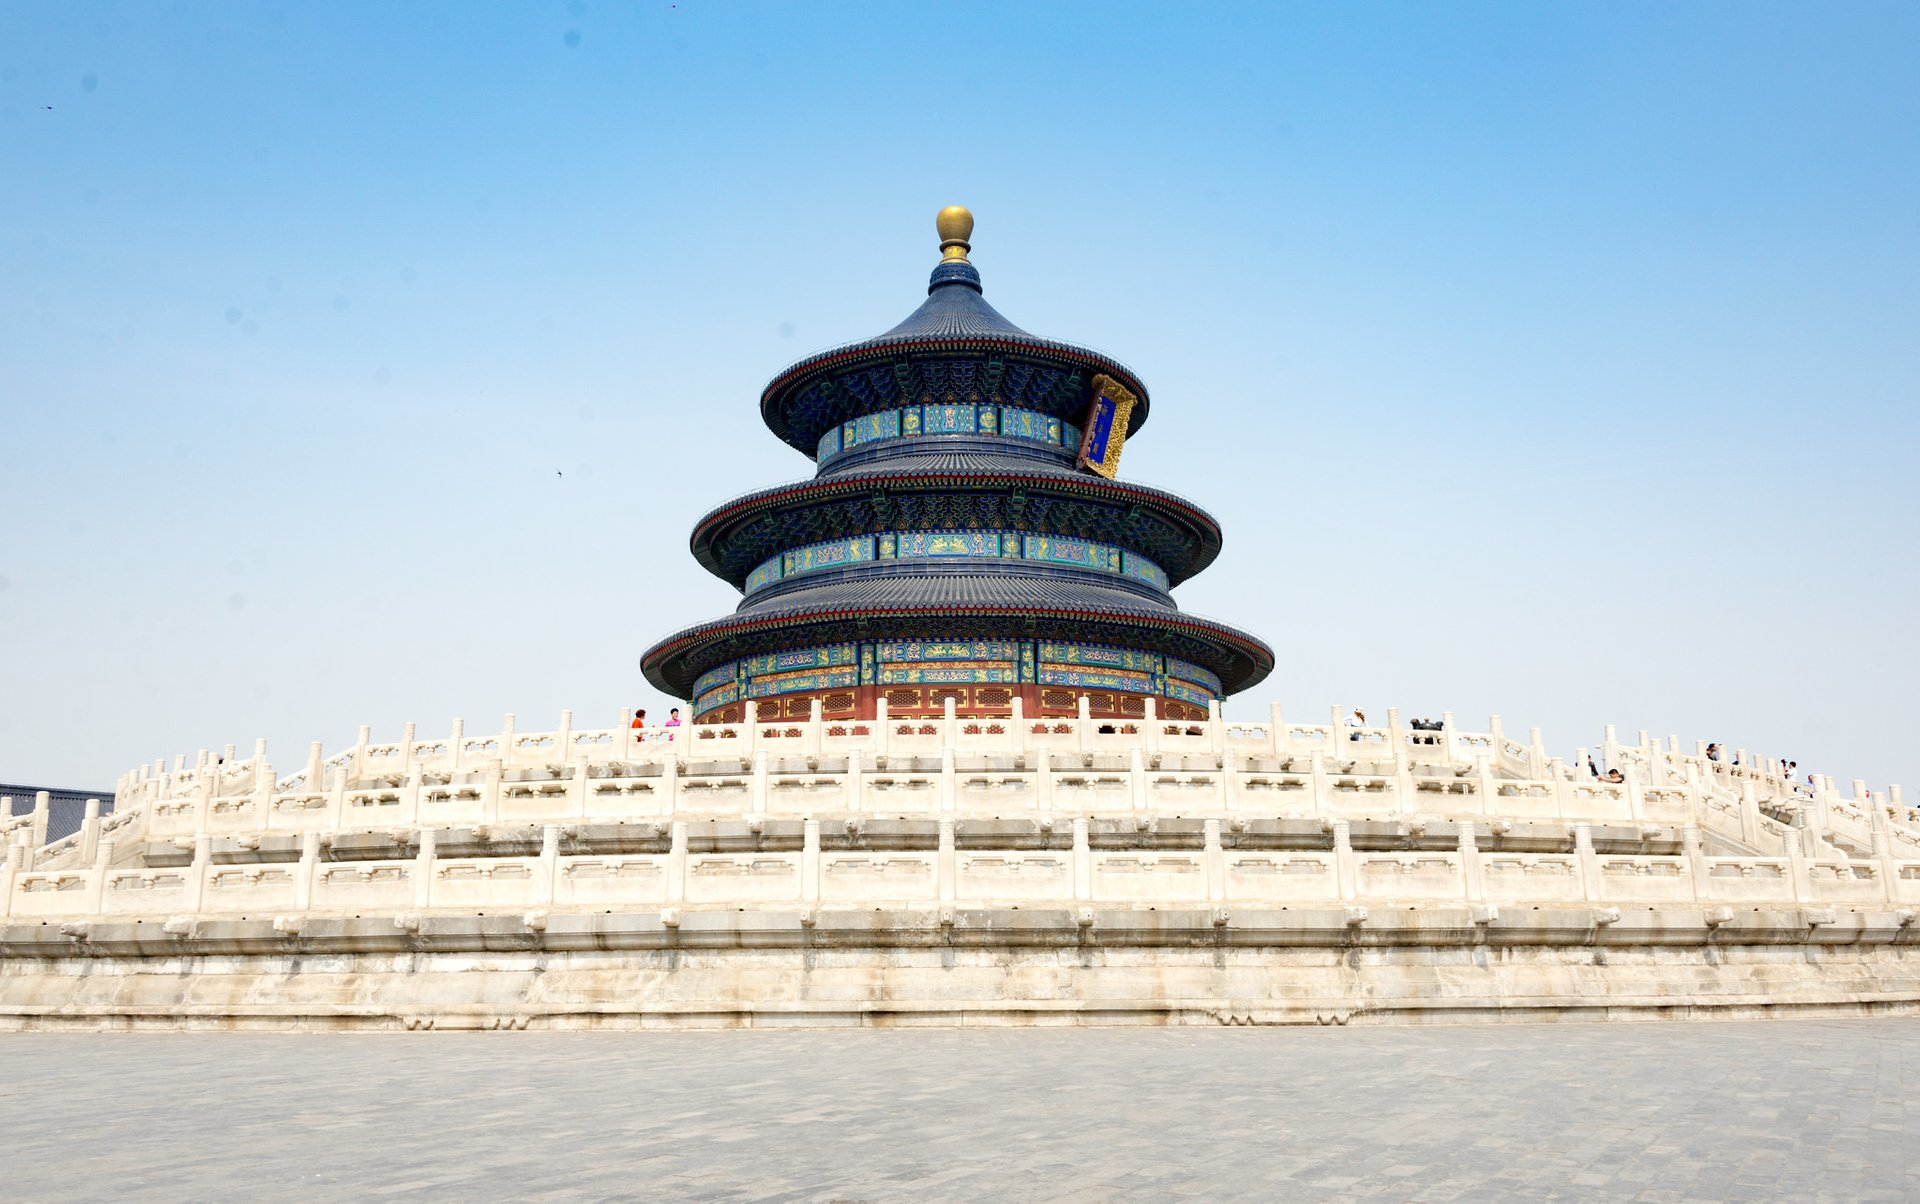 Temple of Heaven in Beijing 2020 - Best Time